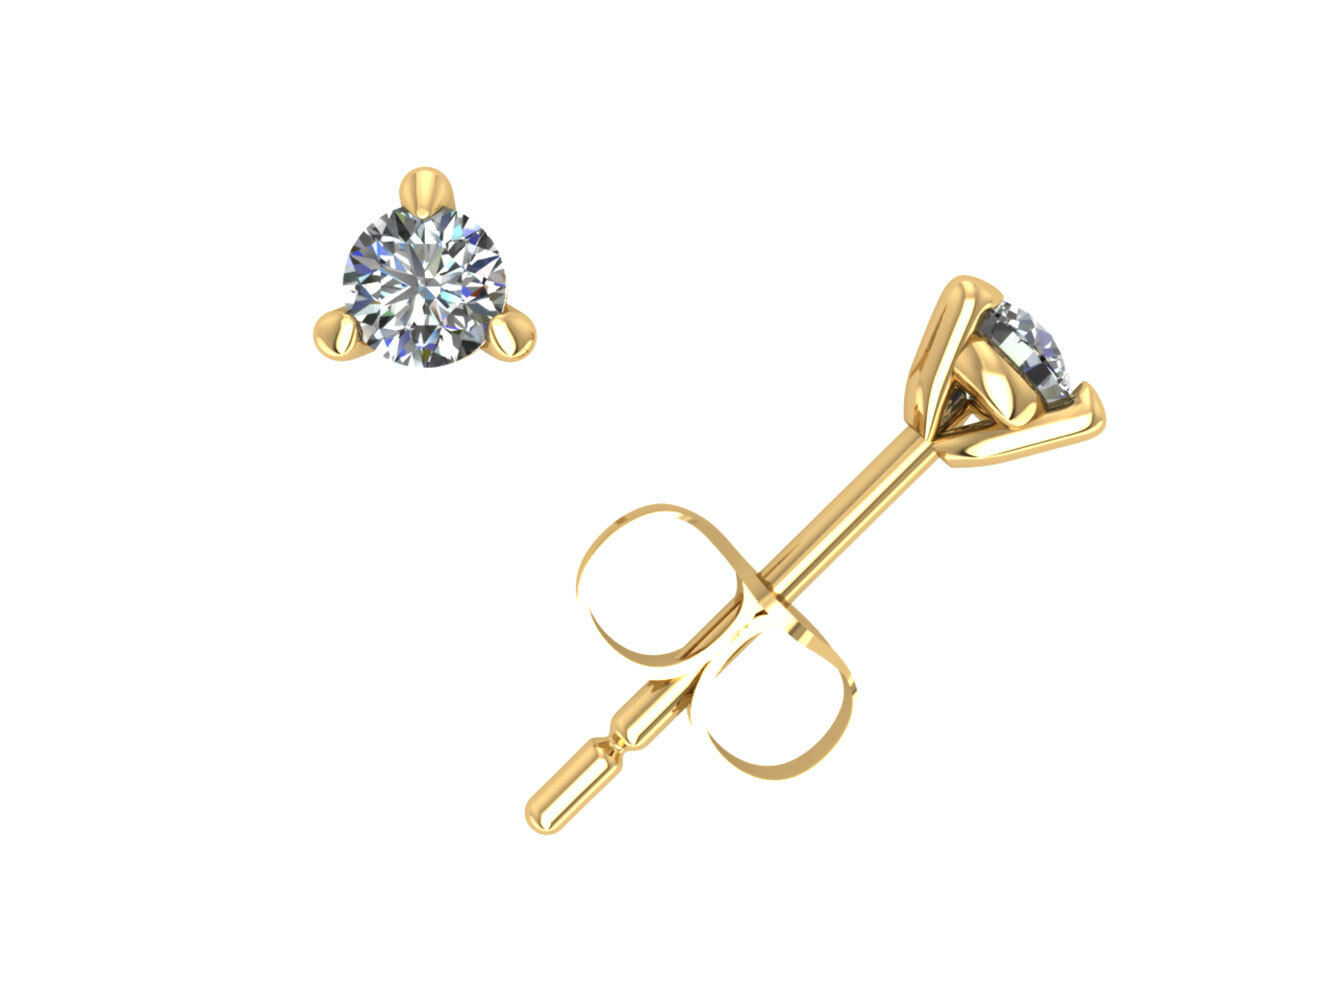 0.20Ct Round Cut Diamond Martini Stud Earrings 14k Yellow gold Prong Set F VS2